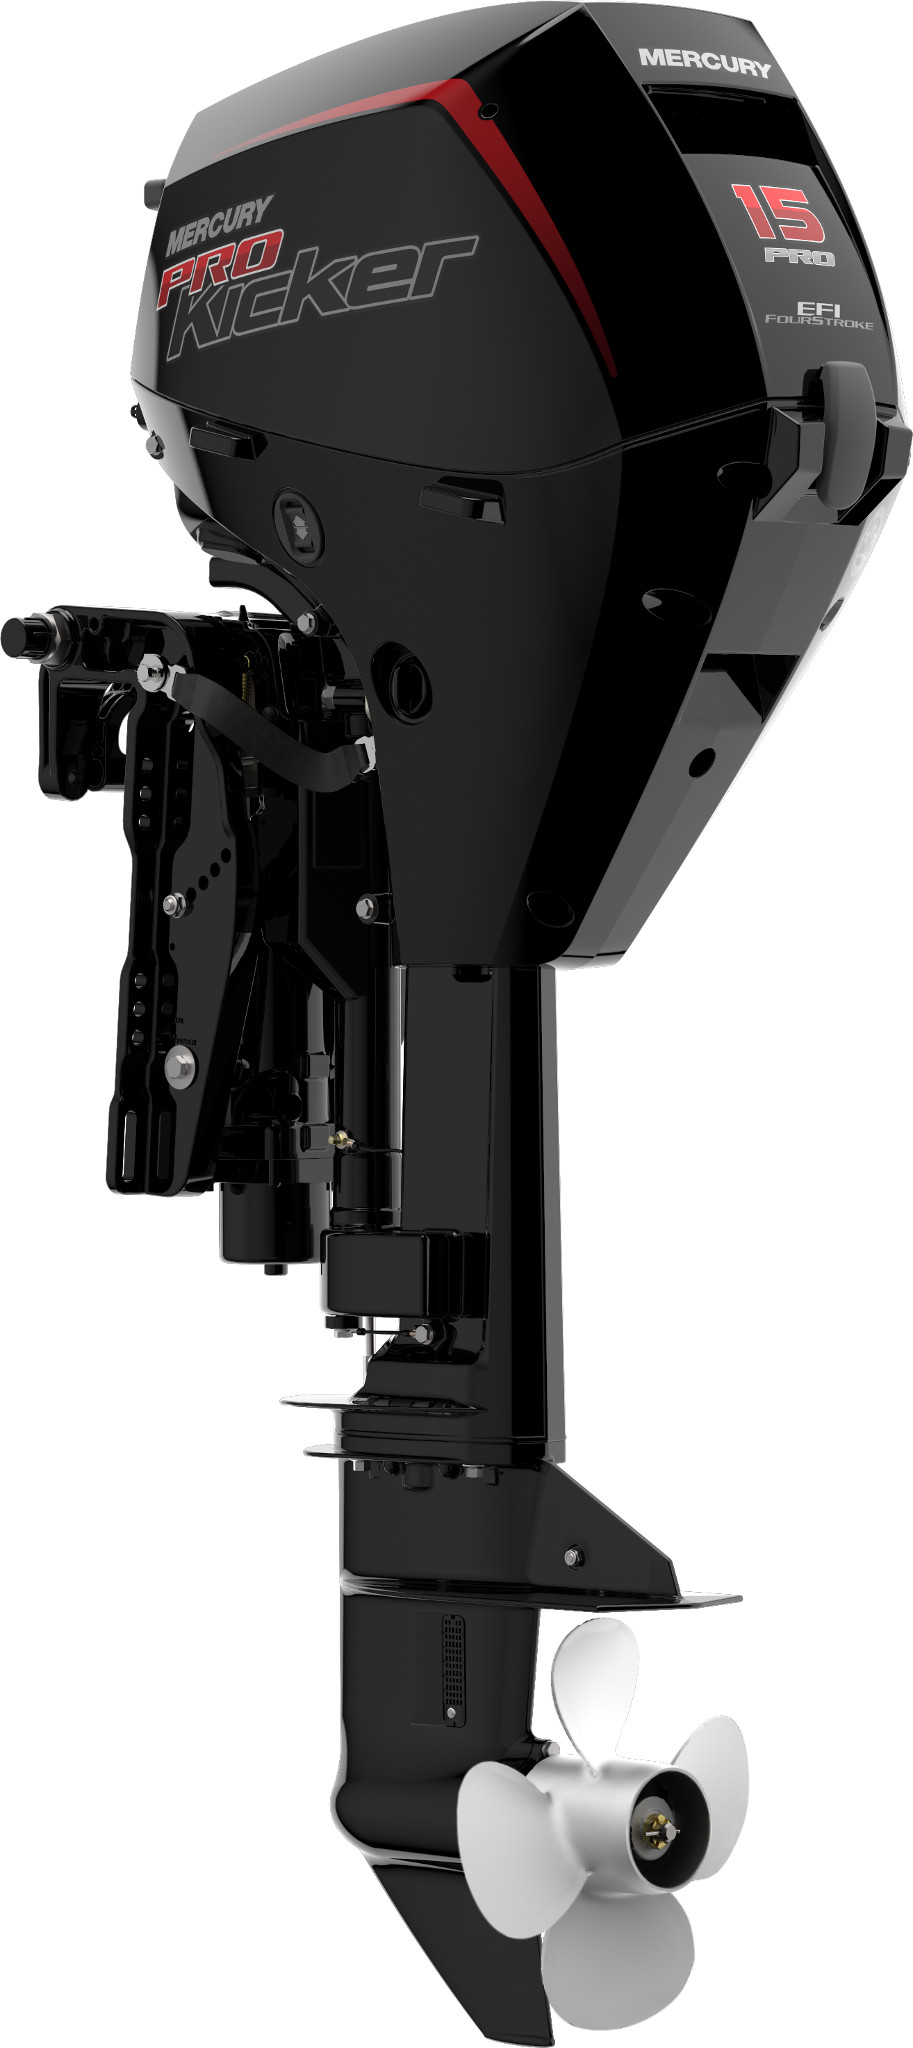 Prokicker FS 15HP Port-3 outboard motor